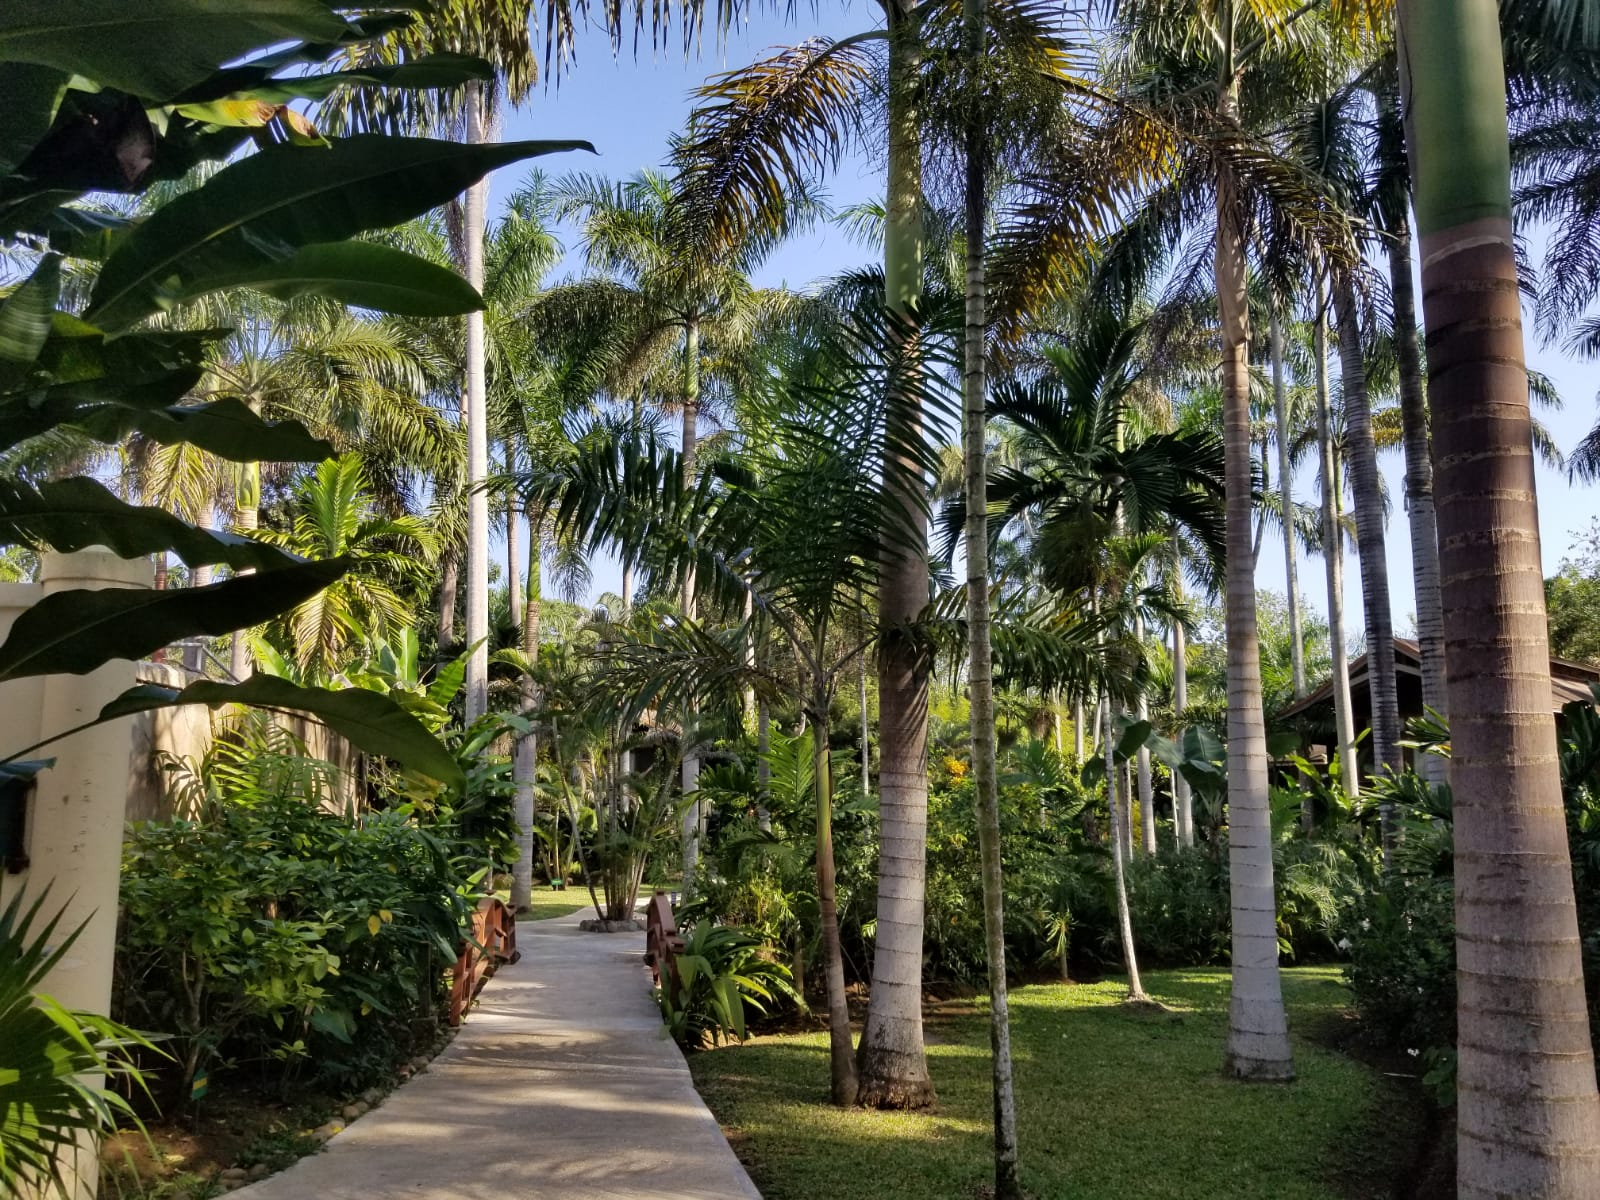 This is what you saw walking around the resort. Almost zero people, beautiful foliage and you could even hear the insects!